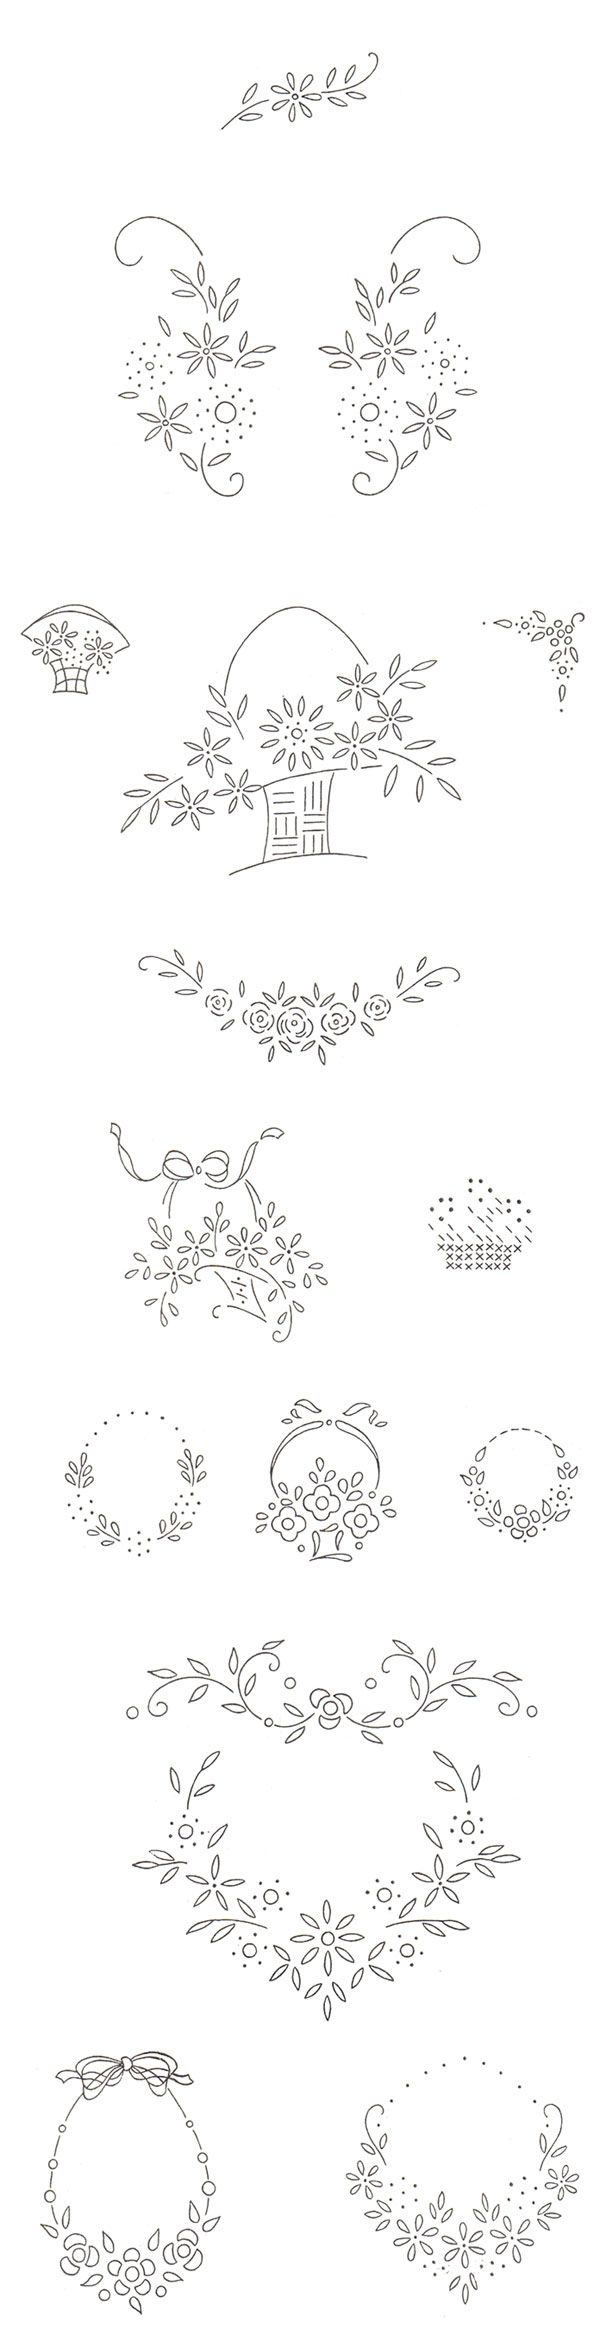 Best 25 vintage embroidery patterns ideas on pinterest vintage free vintage floral motifs perfect for hand embroidery needlework bankloansurffo Choice Image